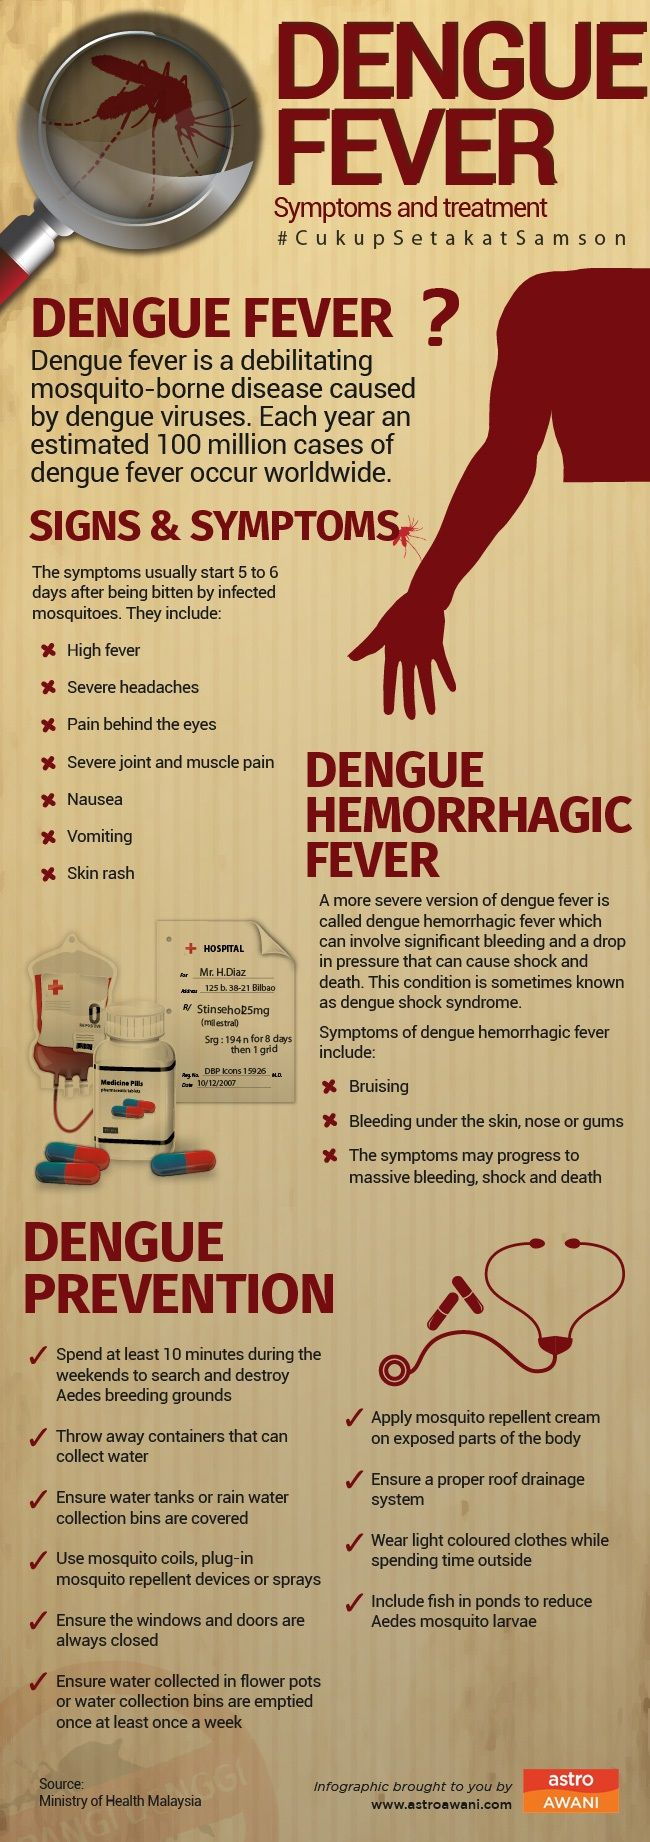 essay on dengue View and download dengue essays examples also discover topics, titles, outlines, thesis statements, and conclusions for your dengue essay.